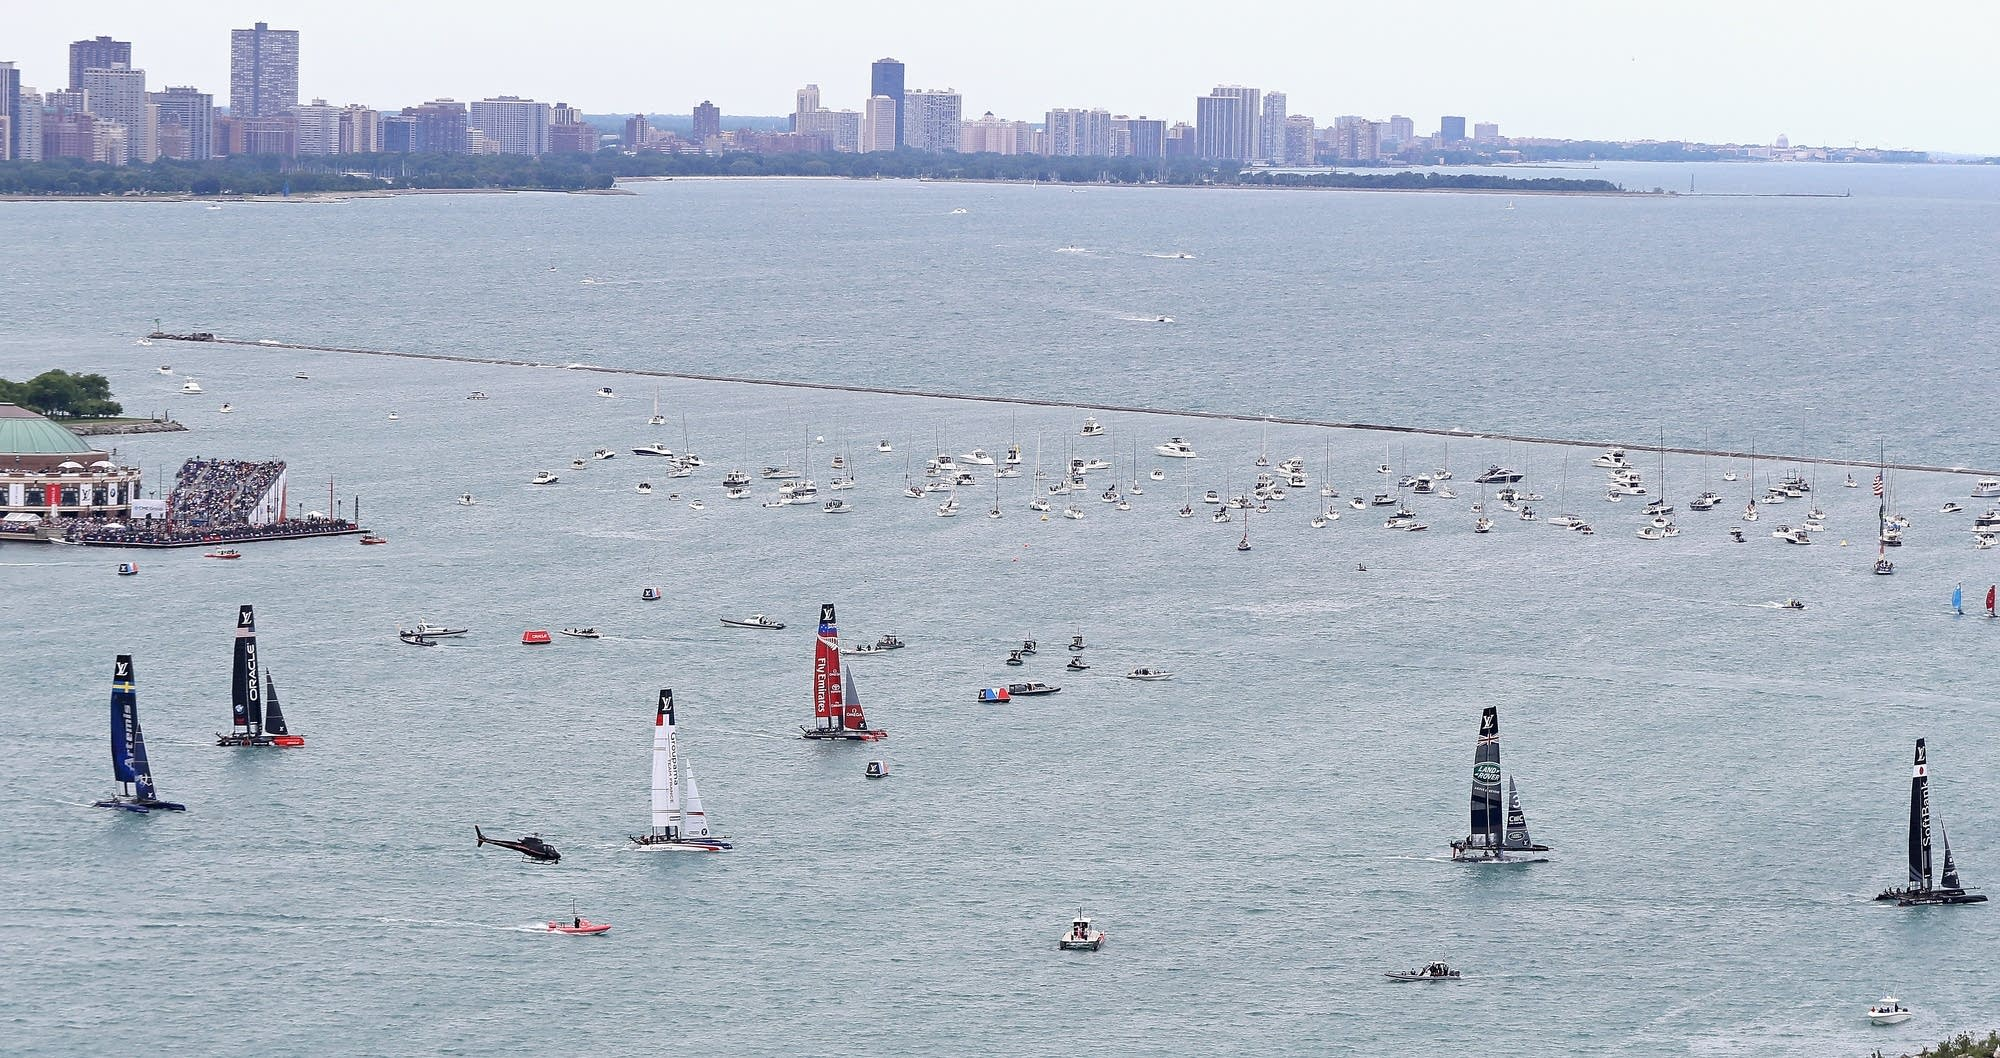 Boats race on Lake Michigan in Chicago.